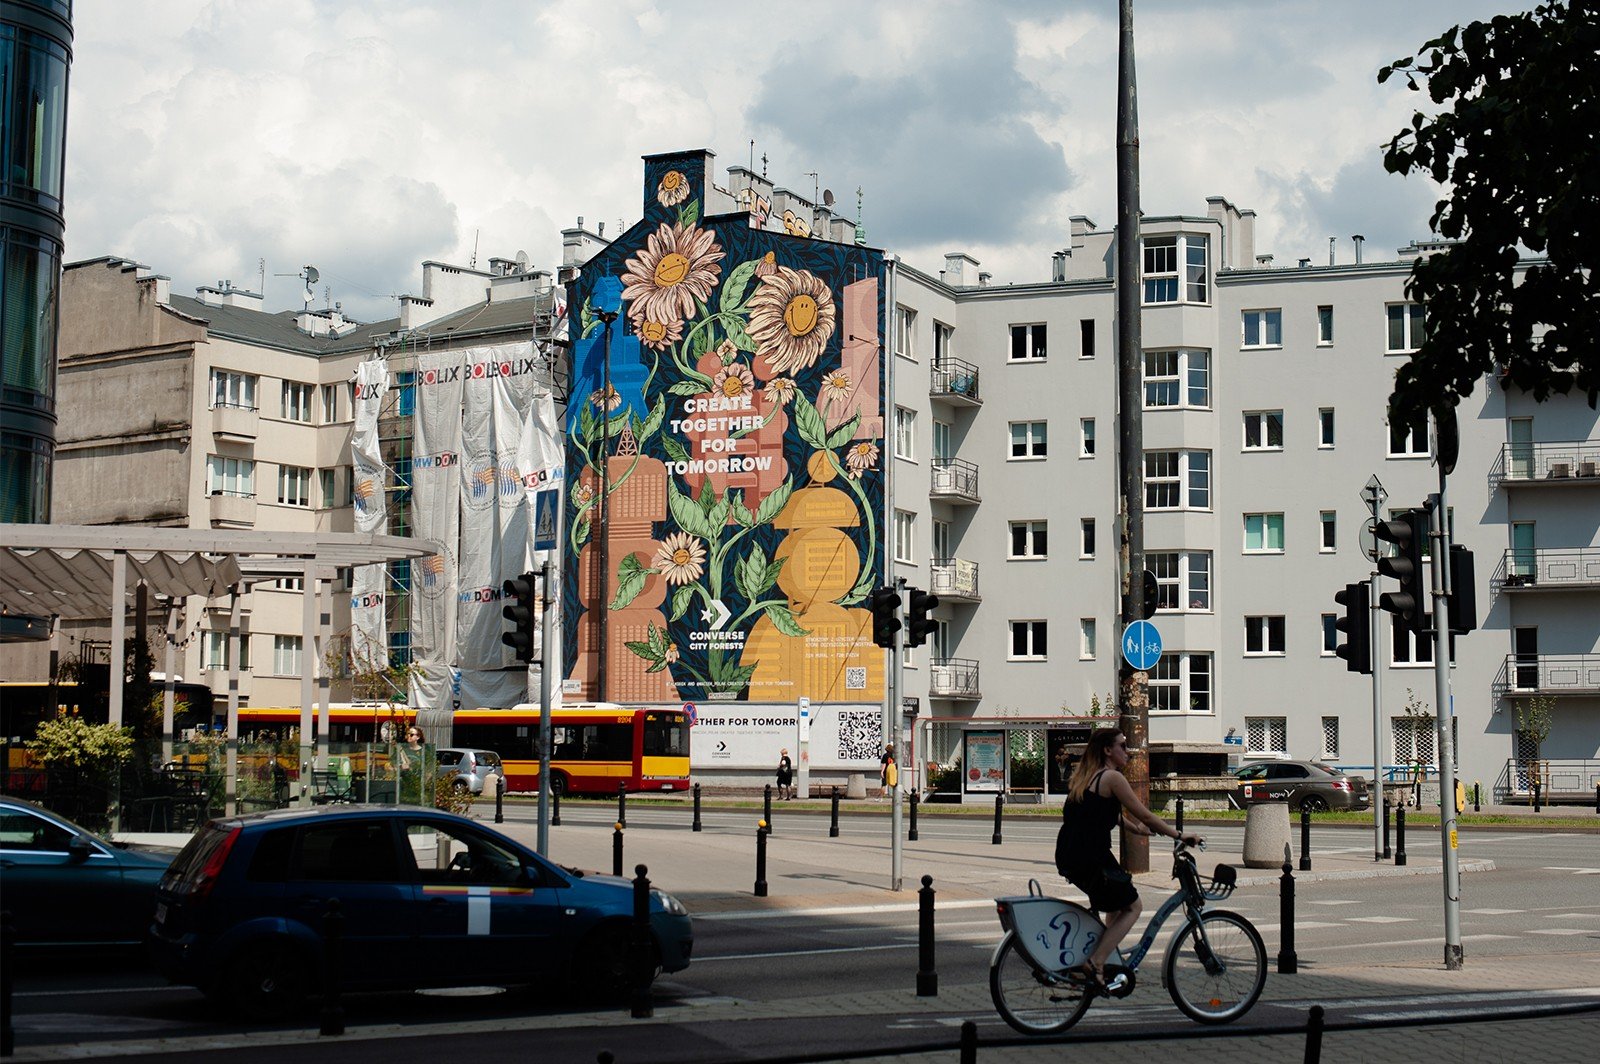 Artistic Converse mural in Warsaw | CREATE TOGETHER FOR TOMORROW | Portfolio